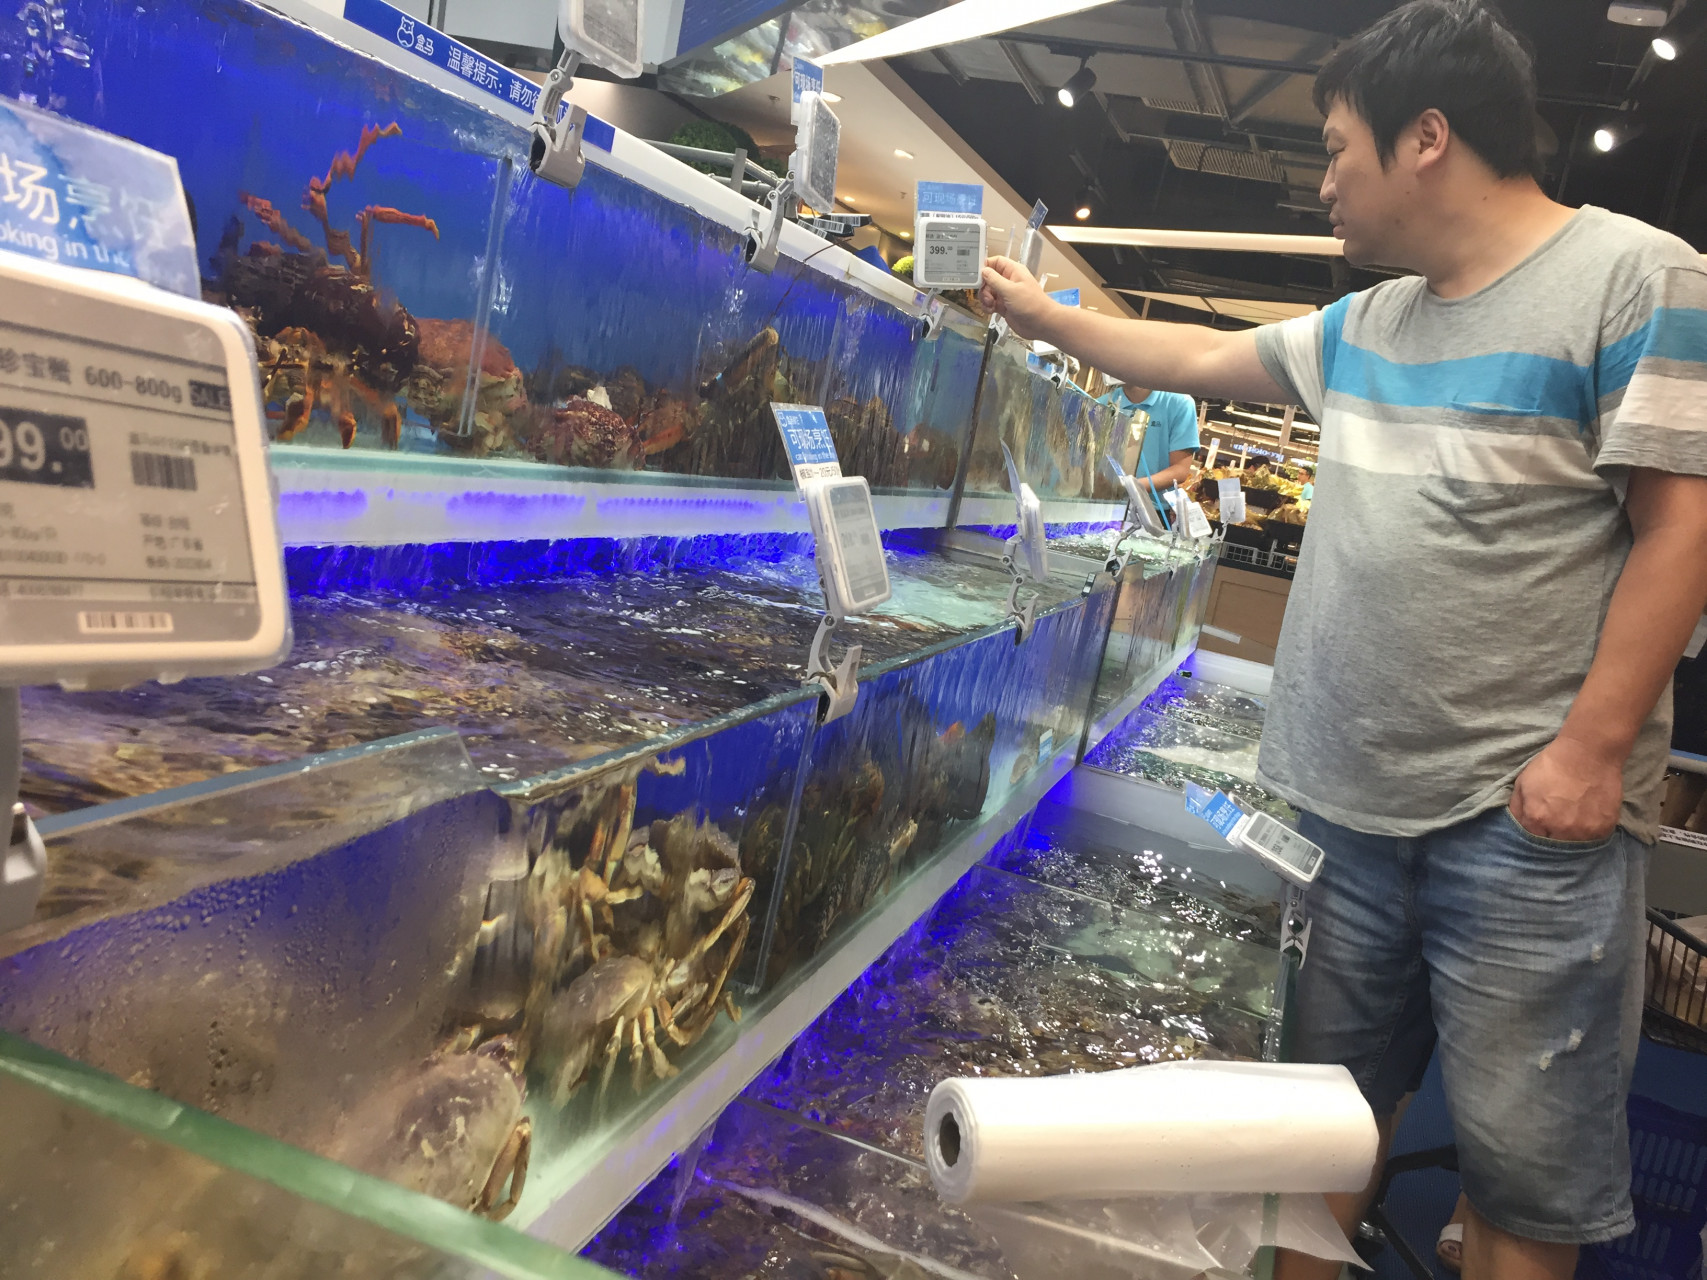 Shoppers can hand-pick their own seafood and get it cooked on the spot. (Image credit: TechNode)